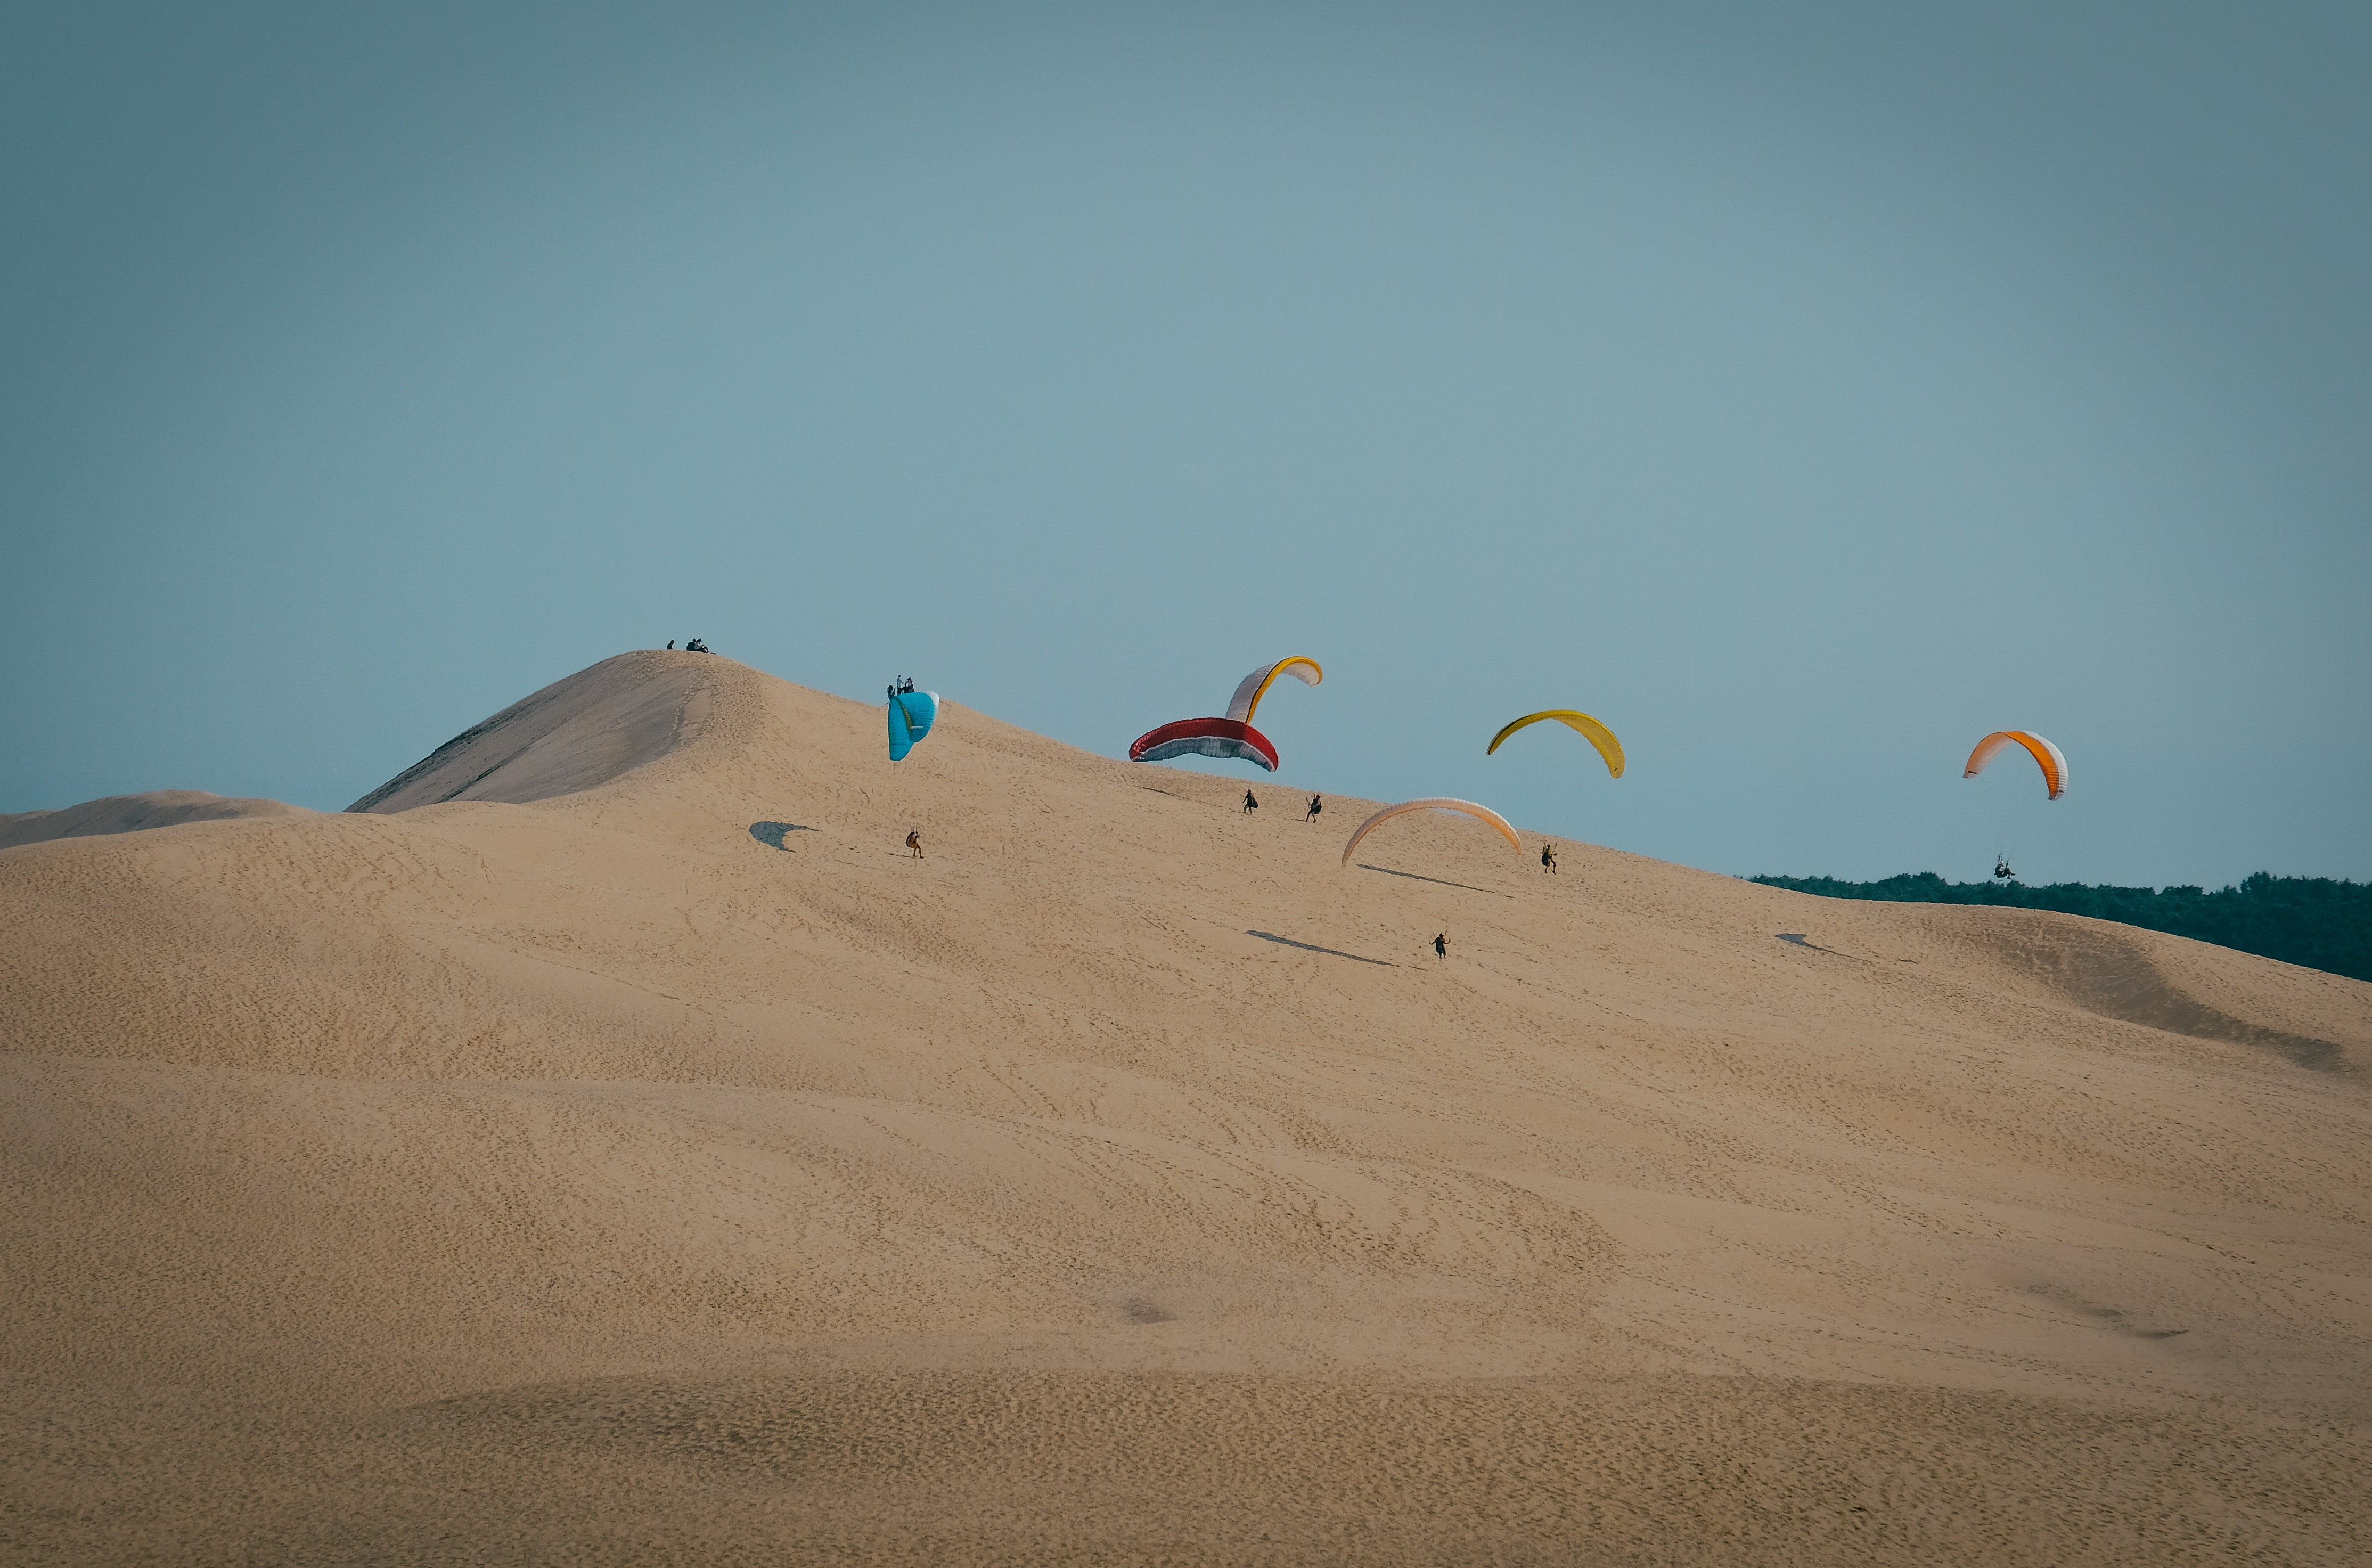 Paraglide at Dune du Pyla in Gironde, France, Romantic Things to do in Europe